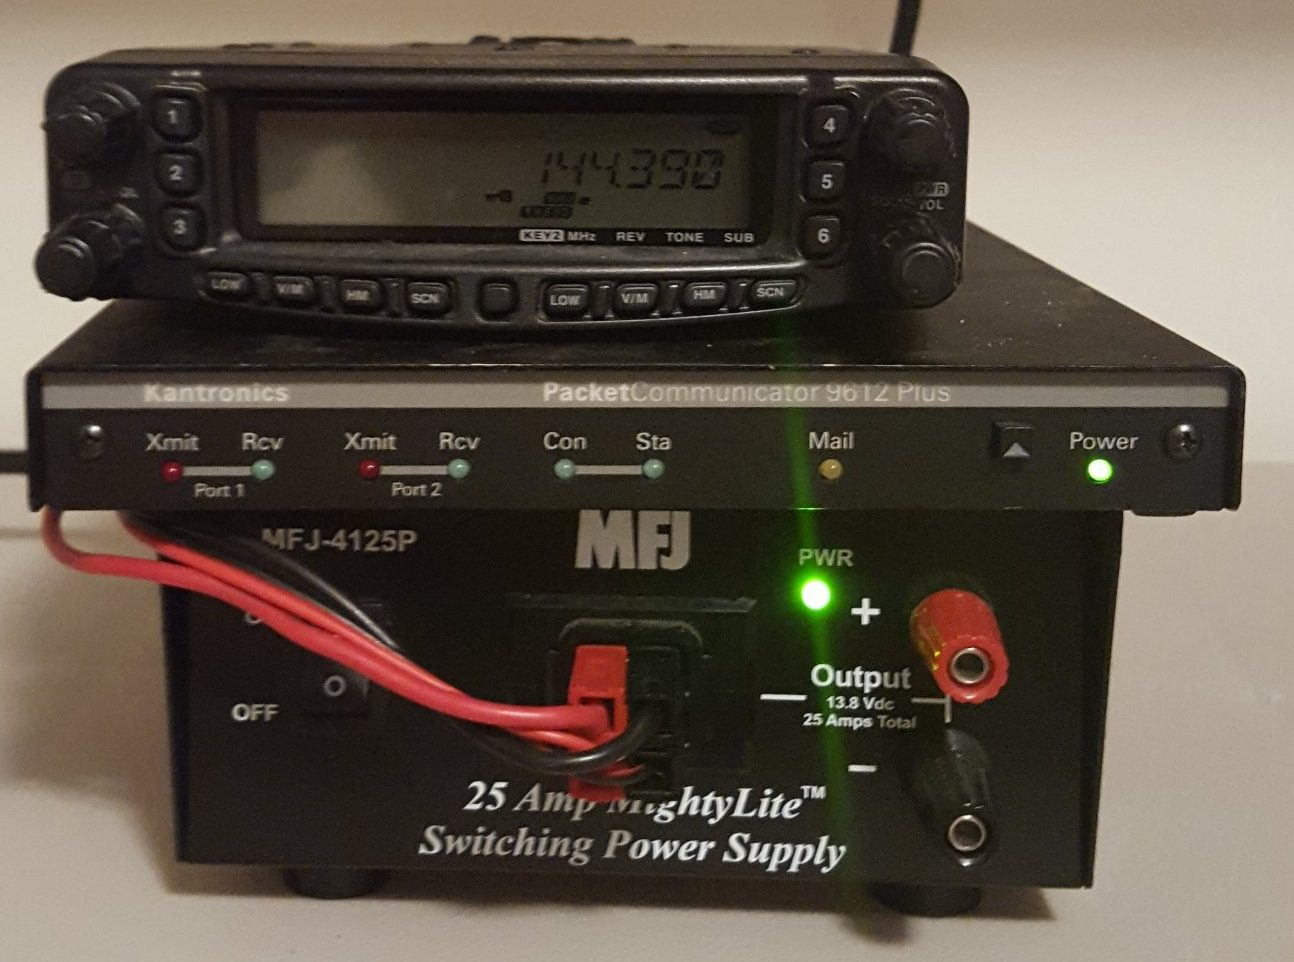 UHF Repeater and APRS